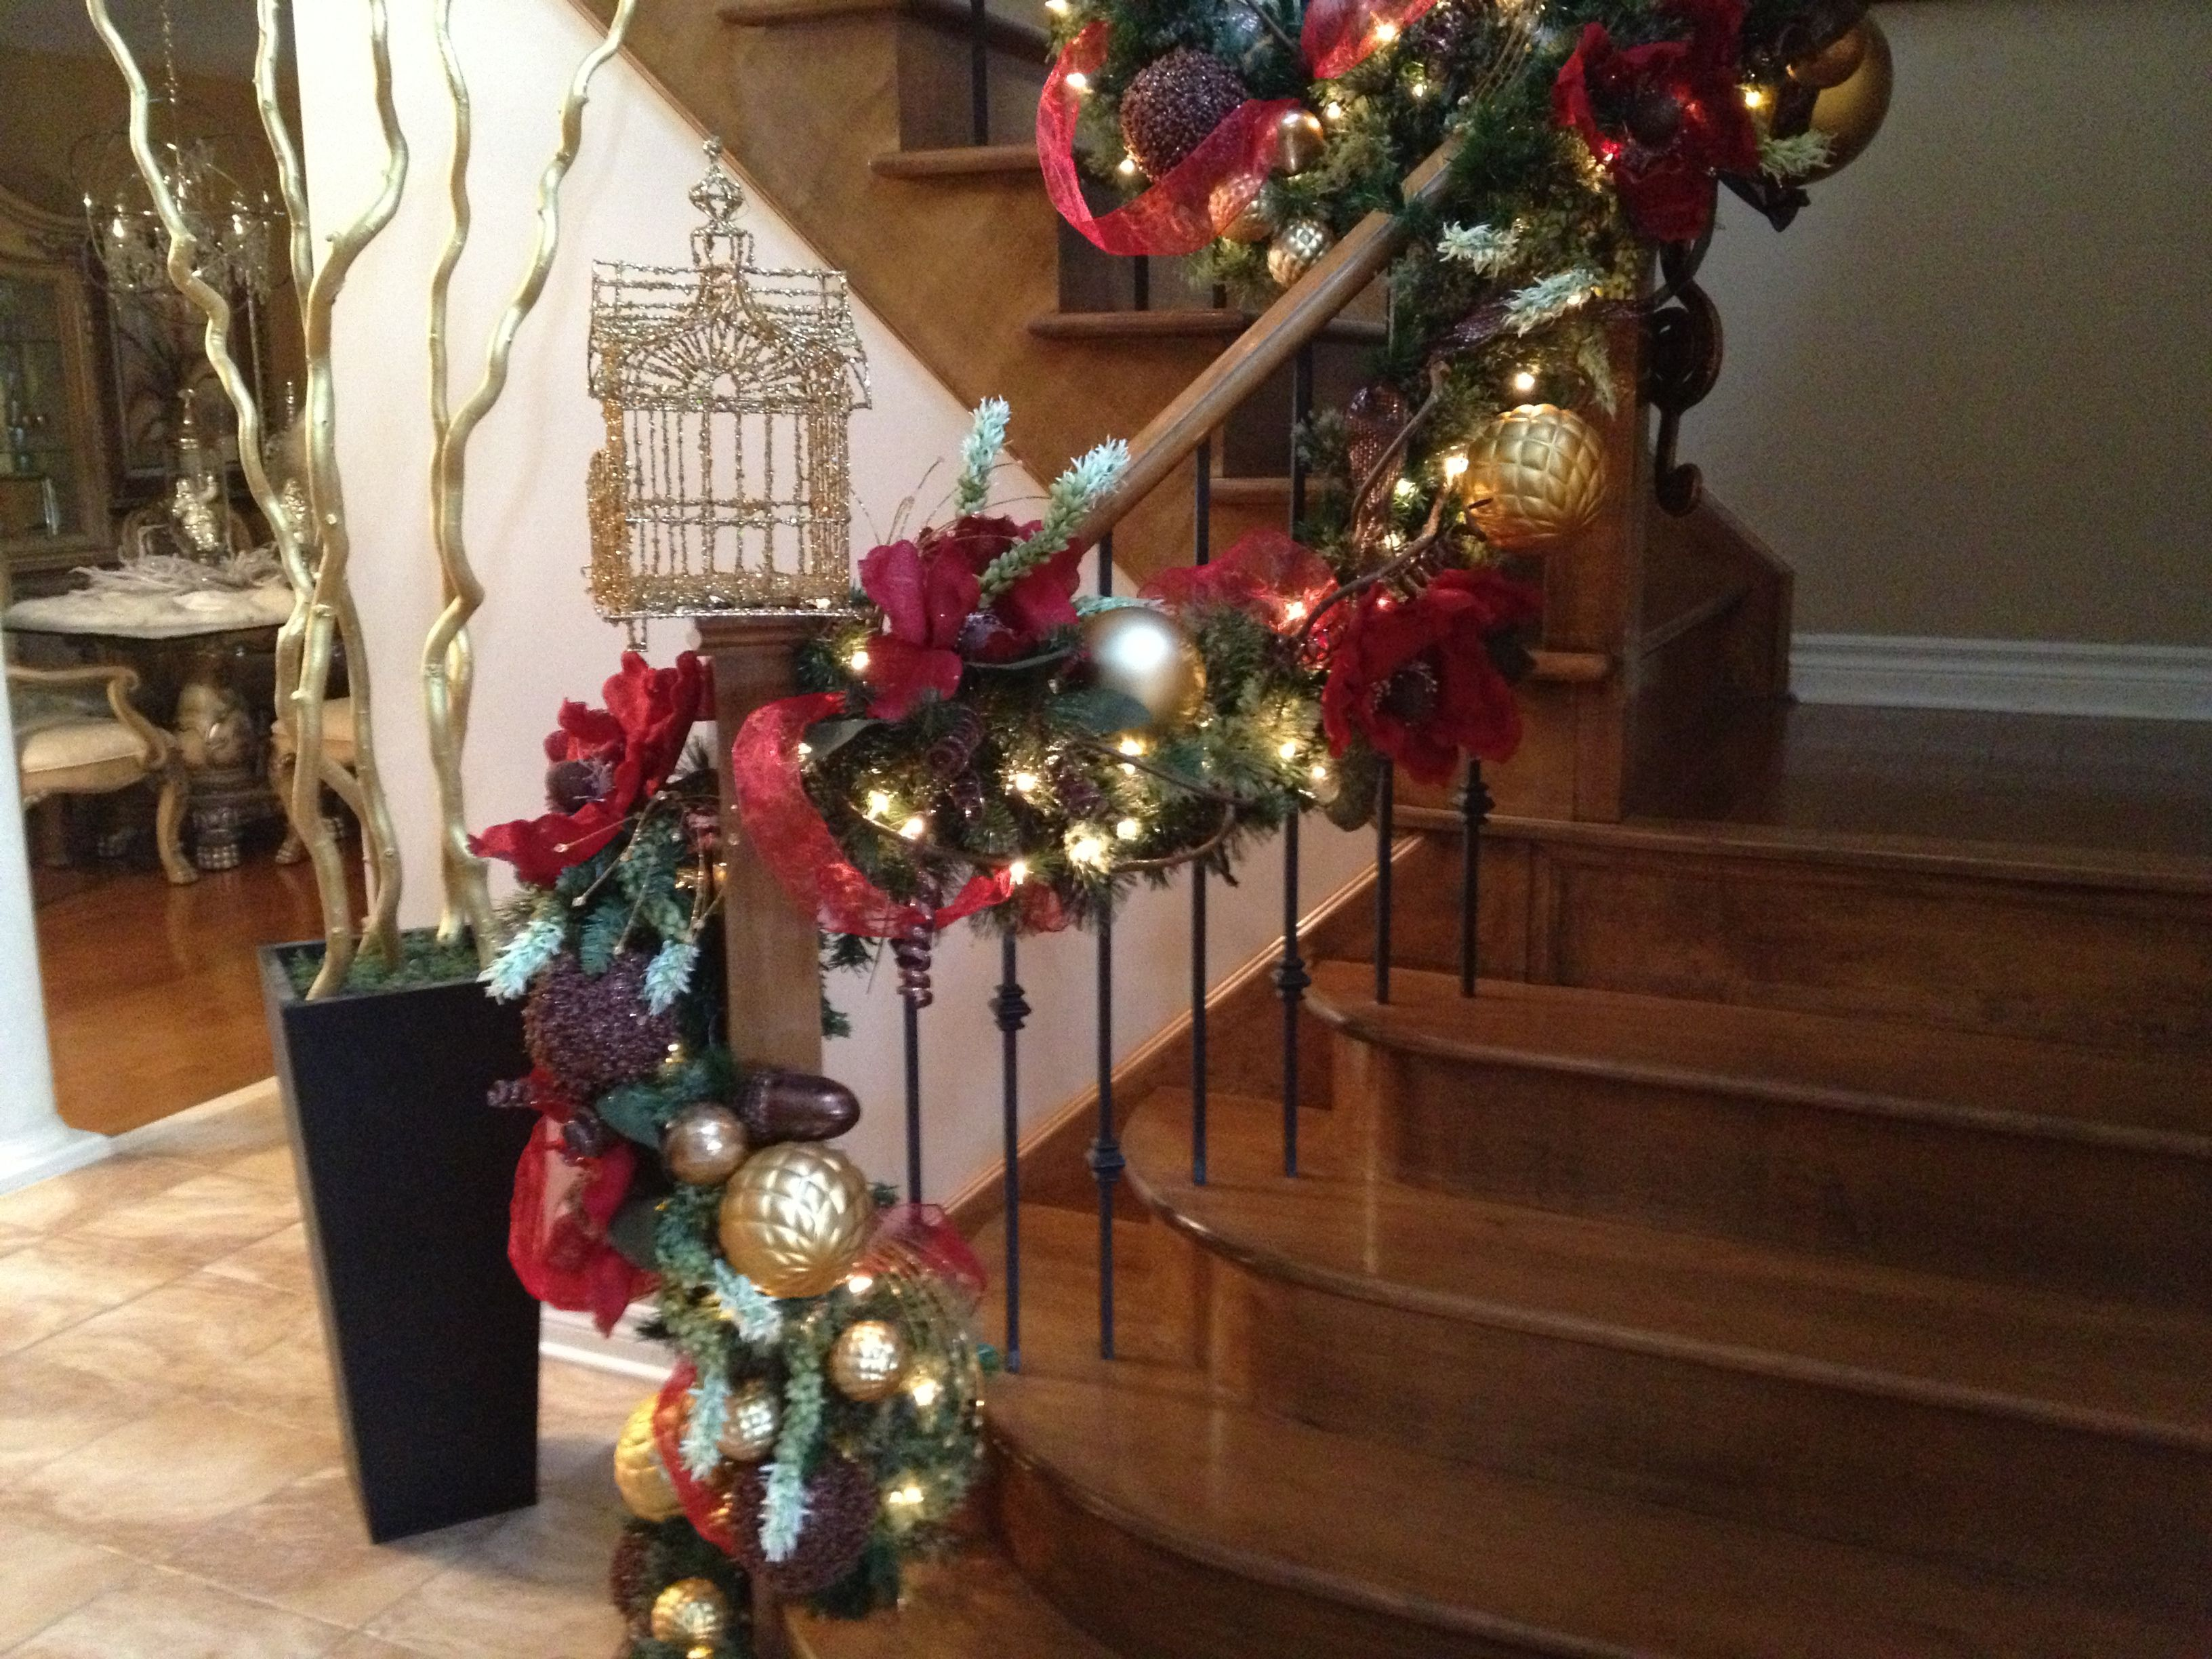 Diy christmas decorations 2014 - Red And Gold Christmas Staircase Holiday Staircase Railing Decoration Design Ideas With Vibrant Creations By